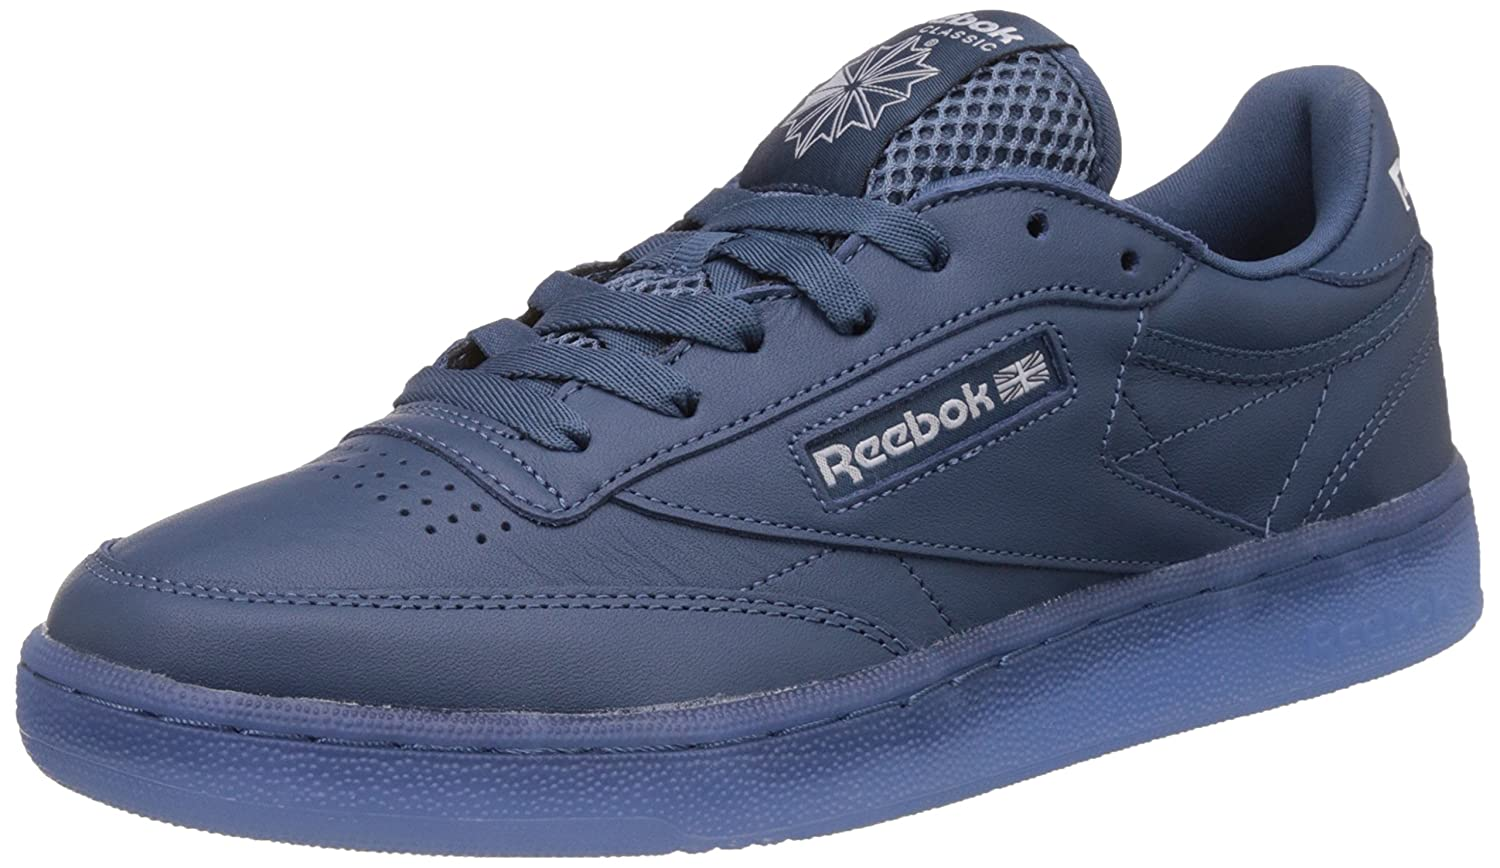 Reebok Classics Men s Club C 85 Ice Brave Blue and White-Ice Leather Tennis  Shoes - 9 UK India (43 EU) (10 US)  Buy Online at Low Prices in India -  Amazon. ... bd547fa4e